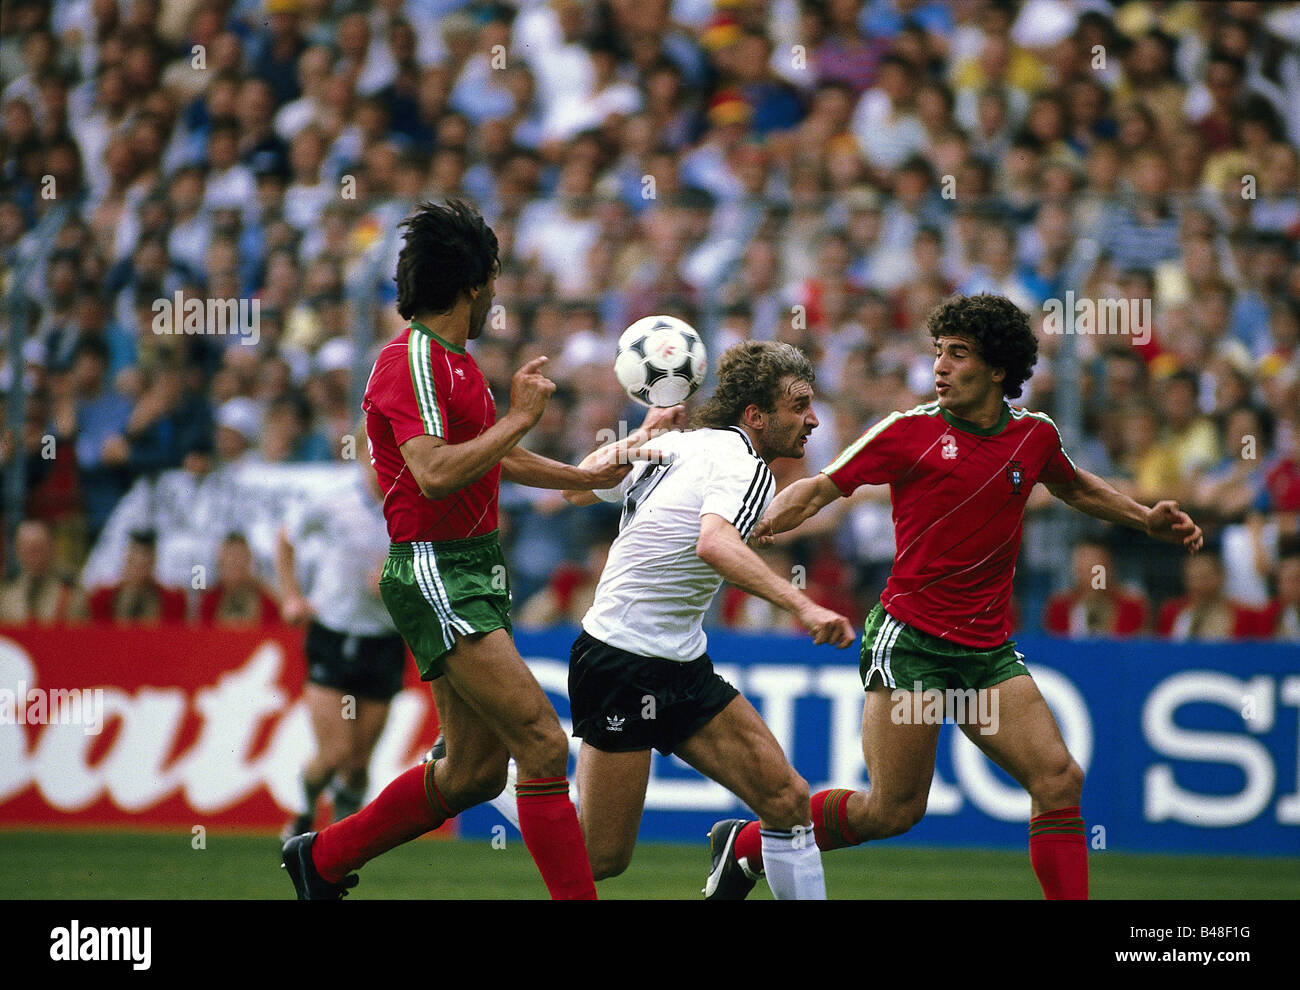 Sport Sports Soccer Football European Championship Euro 1984 Stock Photo Alamy